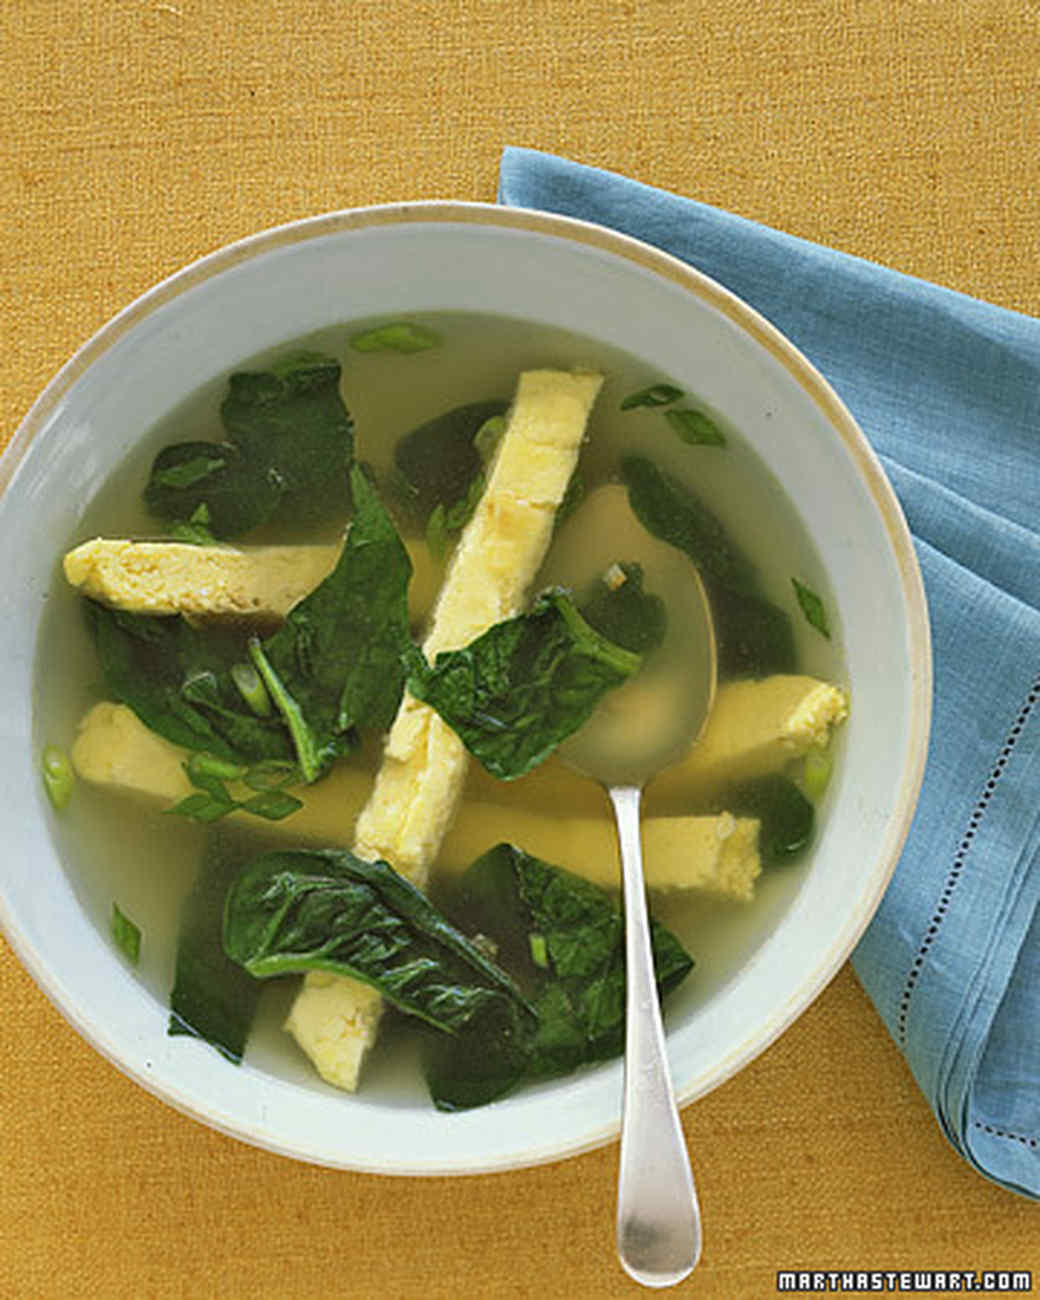 ba102038_0506_spinachsoup.jpg